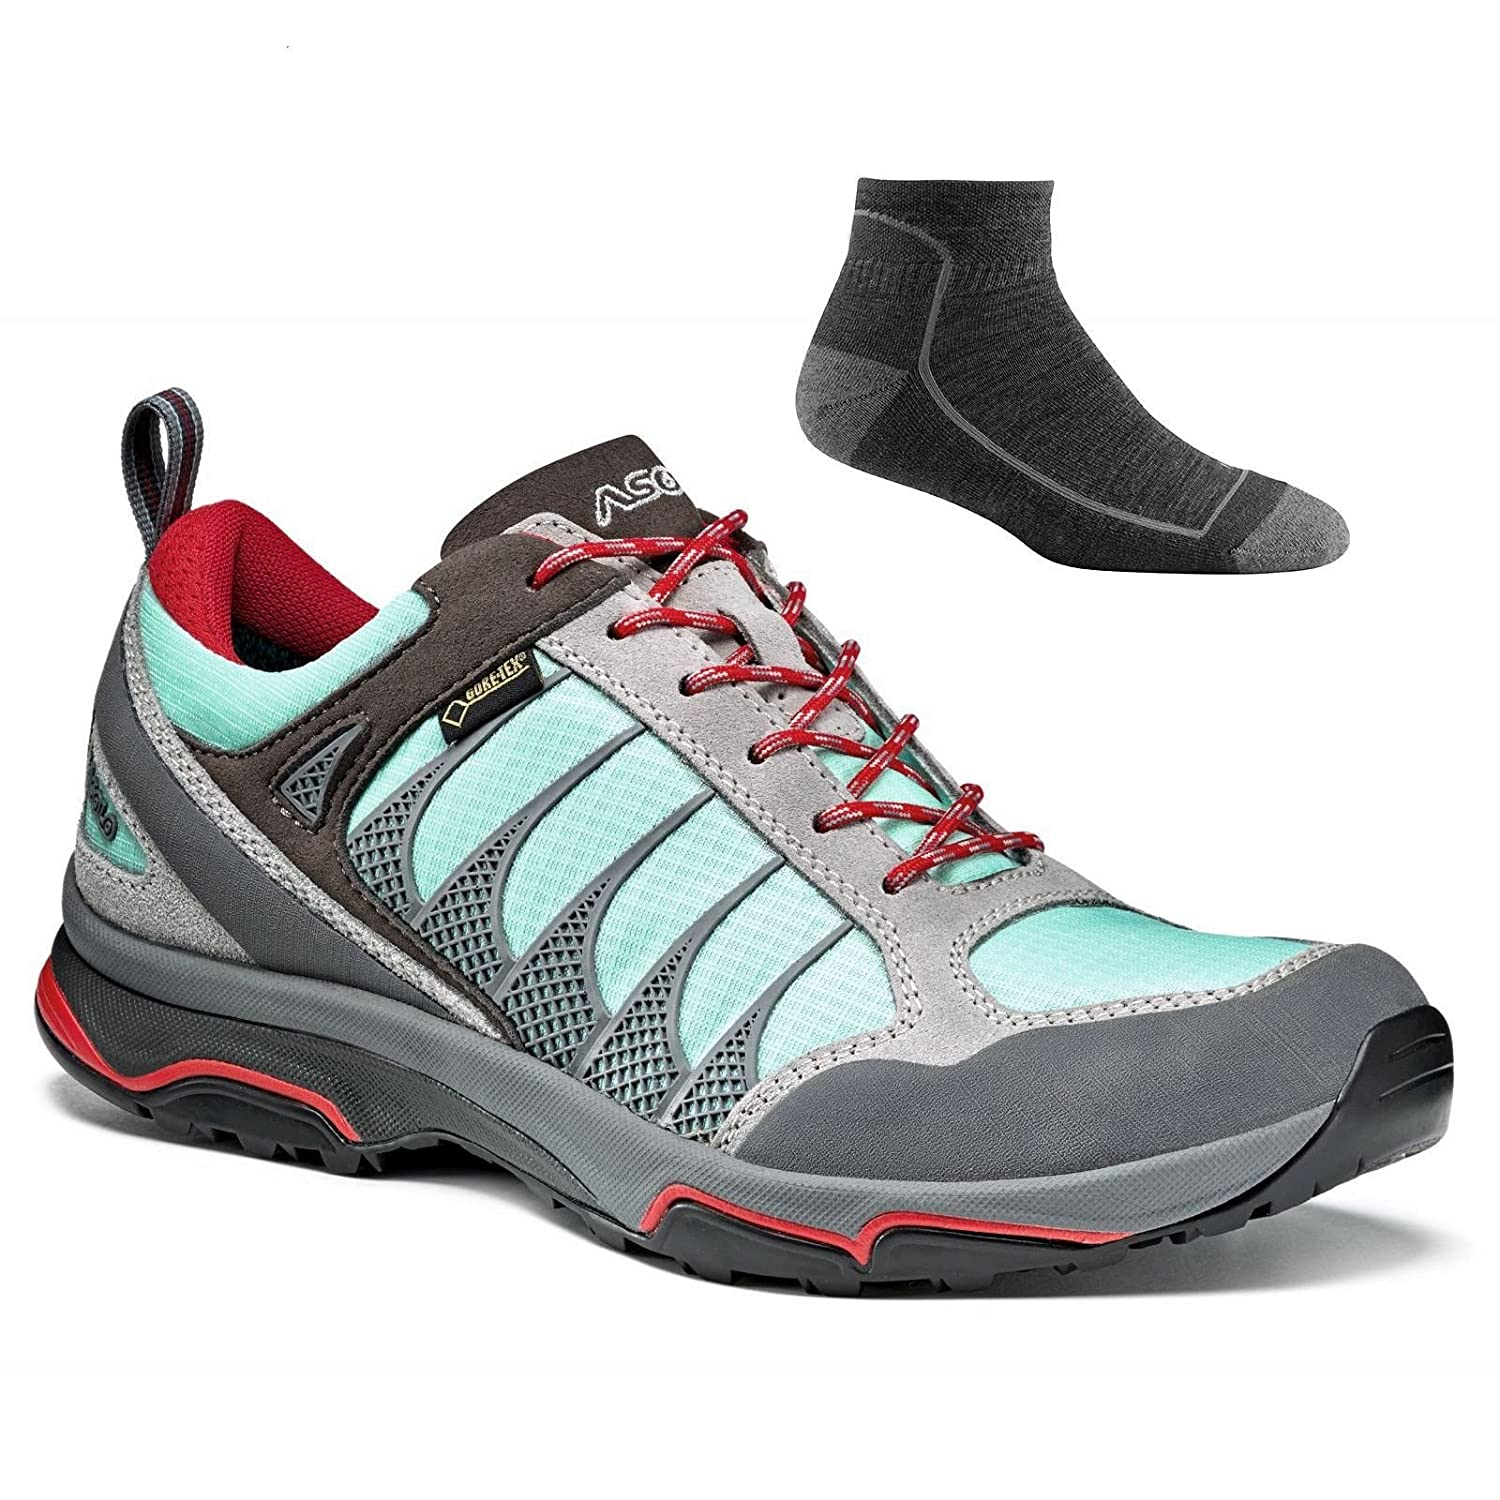 Asolo Women's Blade GV Hiking Shoes B071XZ65YN 10 B(M) US|Silver/Poolside W/ Socks